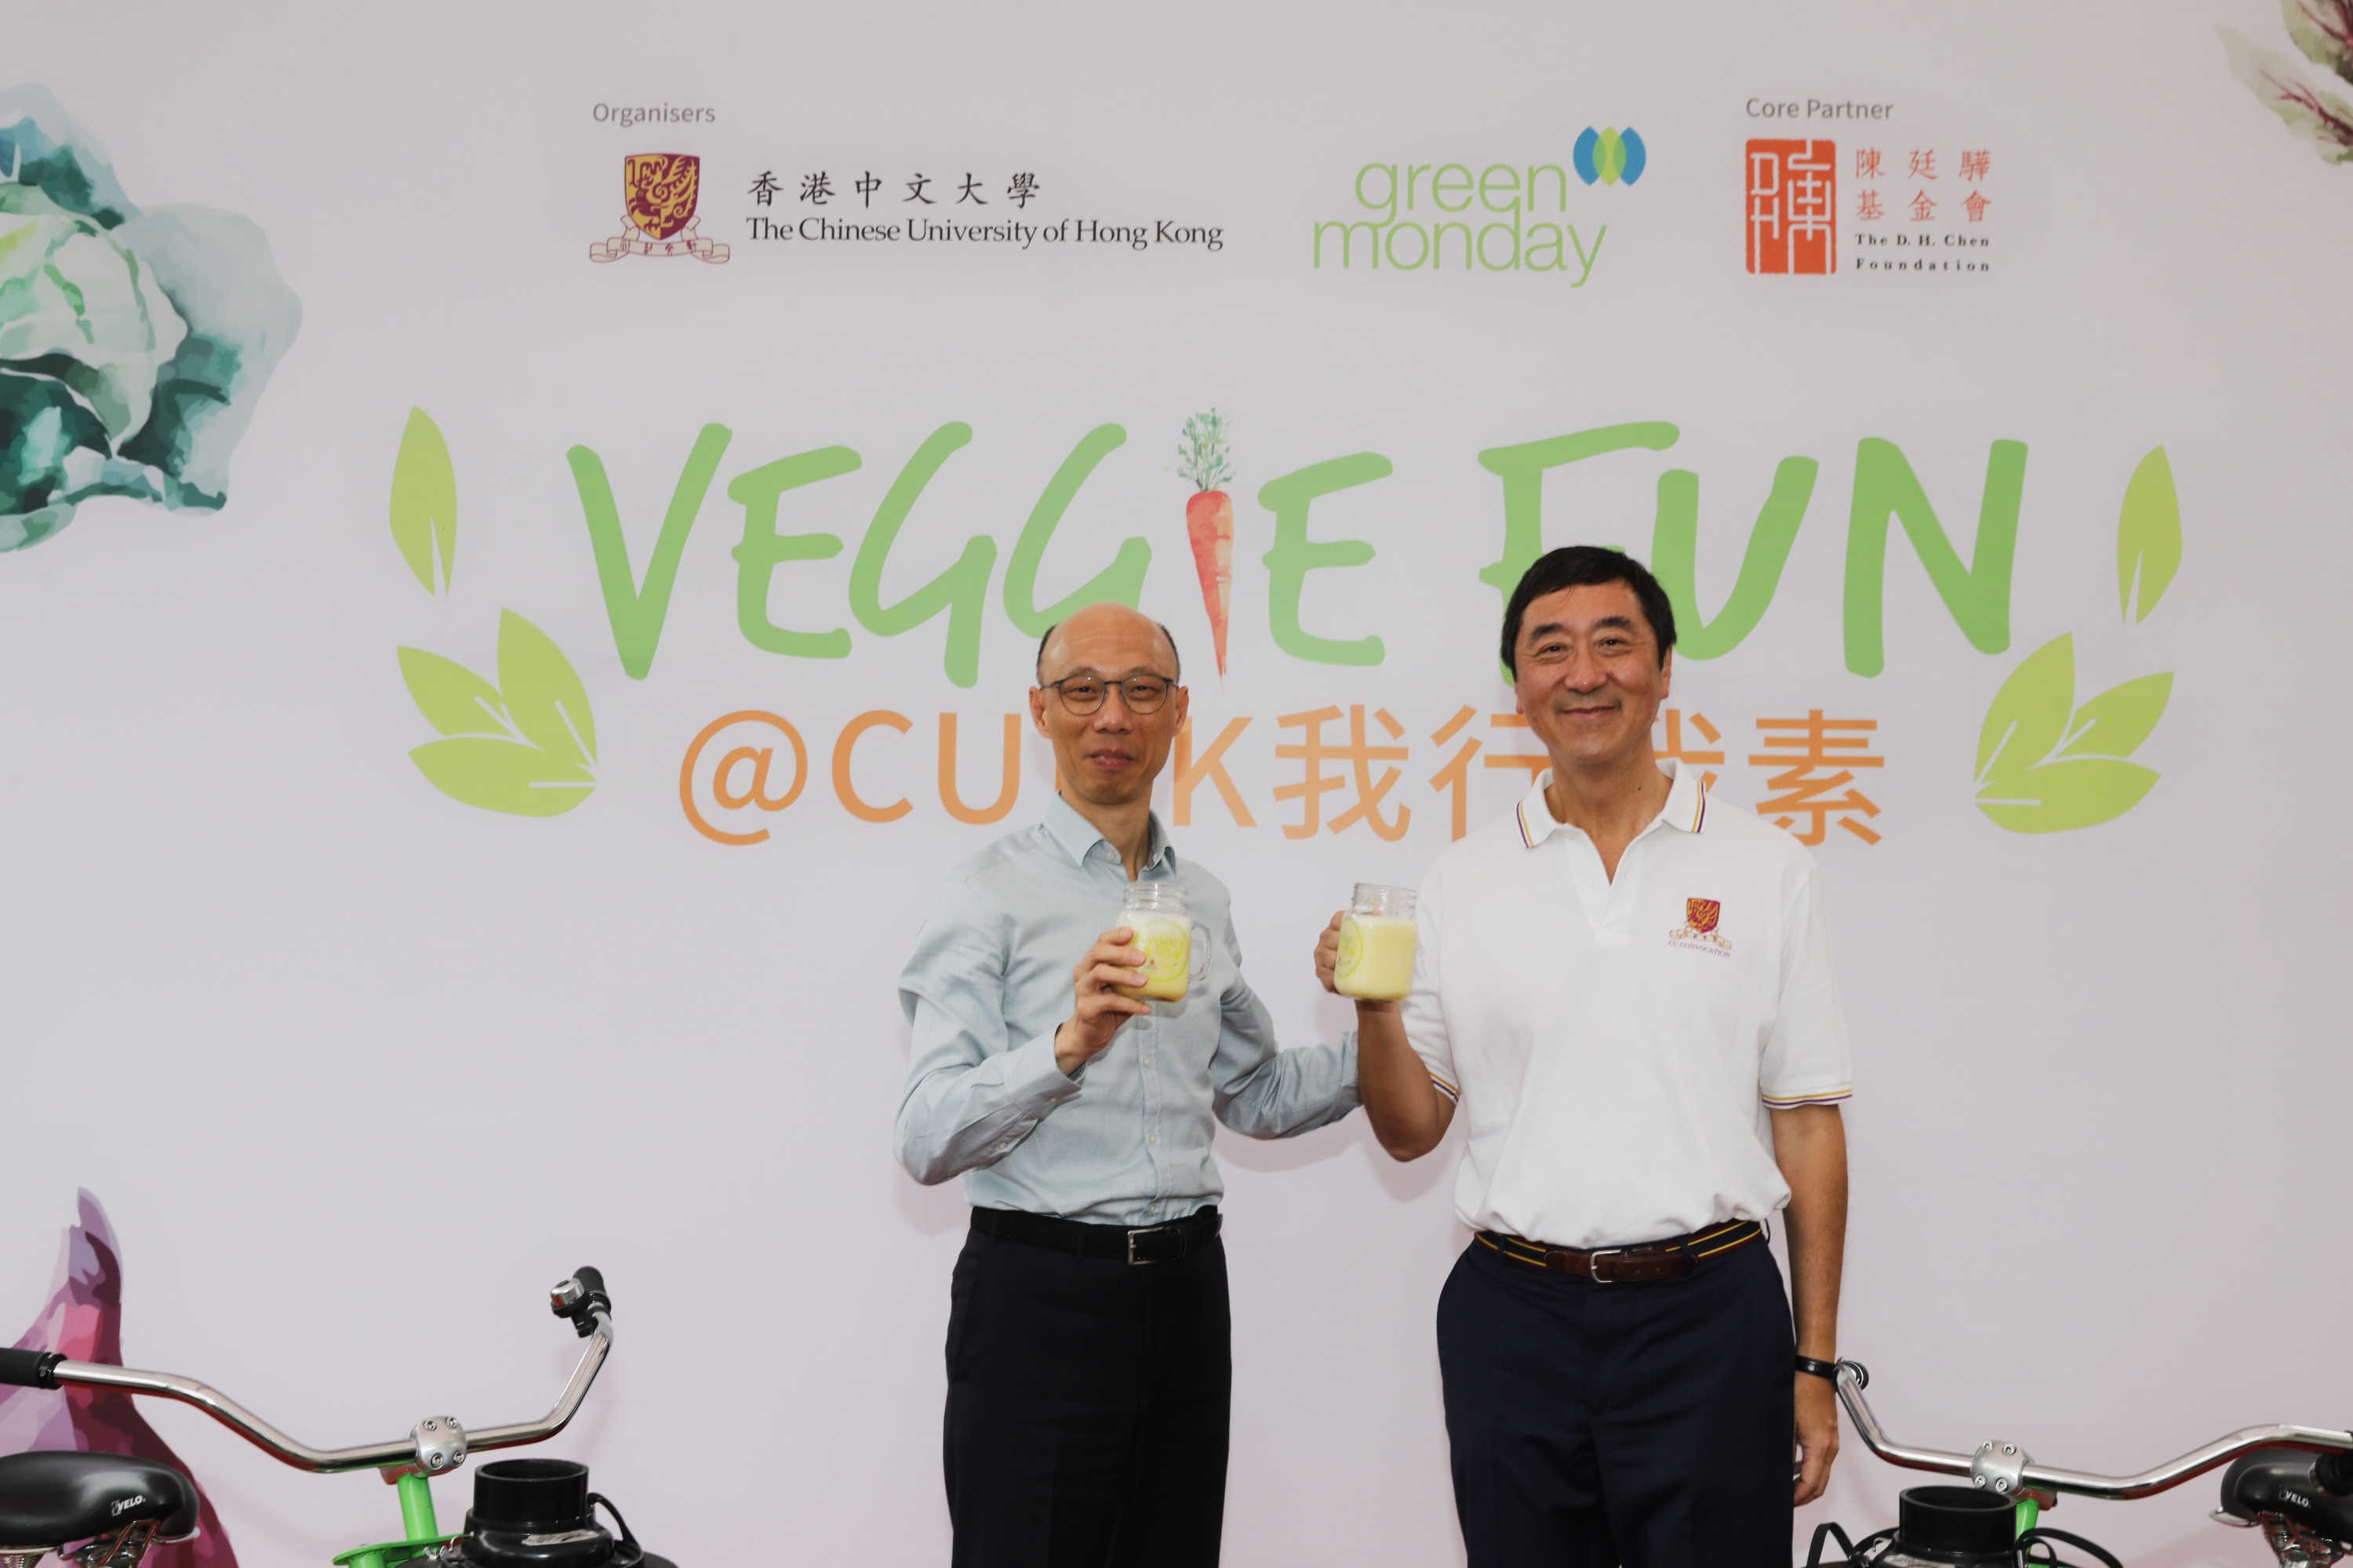 Prof. Joseph Sung and Mr. K.S. Wong check out a bicycle-powered blender and provide a 'feet-on' demonstration of churning fruits into smoothies.